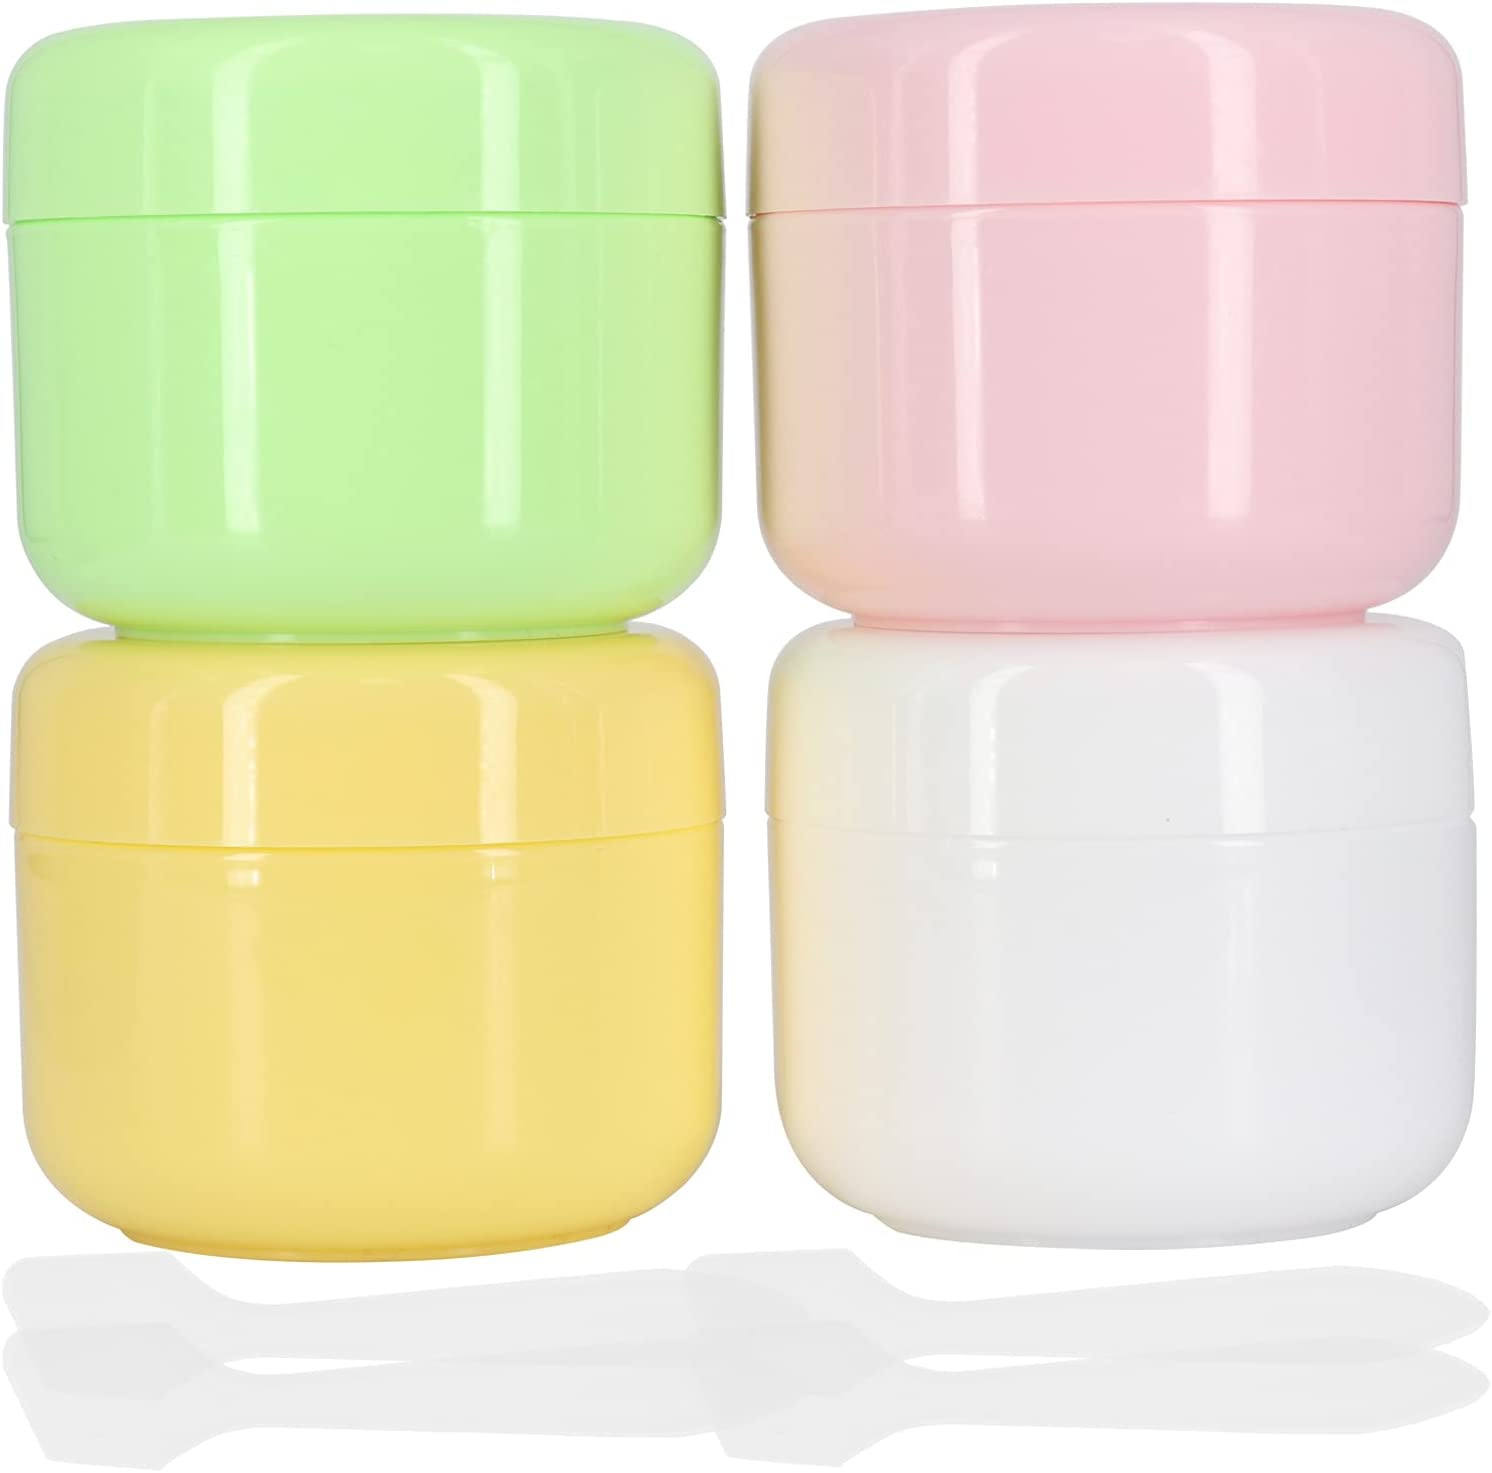 Cosmetic Jars with Leakproof Lids,50 gram Cosmetic Containers,Travel Cream Jars,TSA Approved Leakproof Refillable Empty Plastic Sample Jars,Travel Accessories,4 Pack